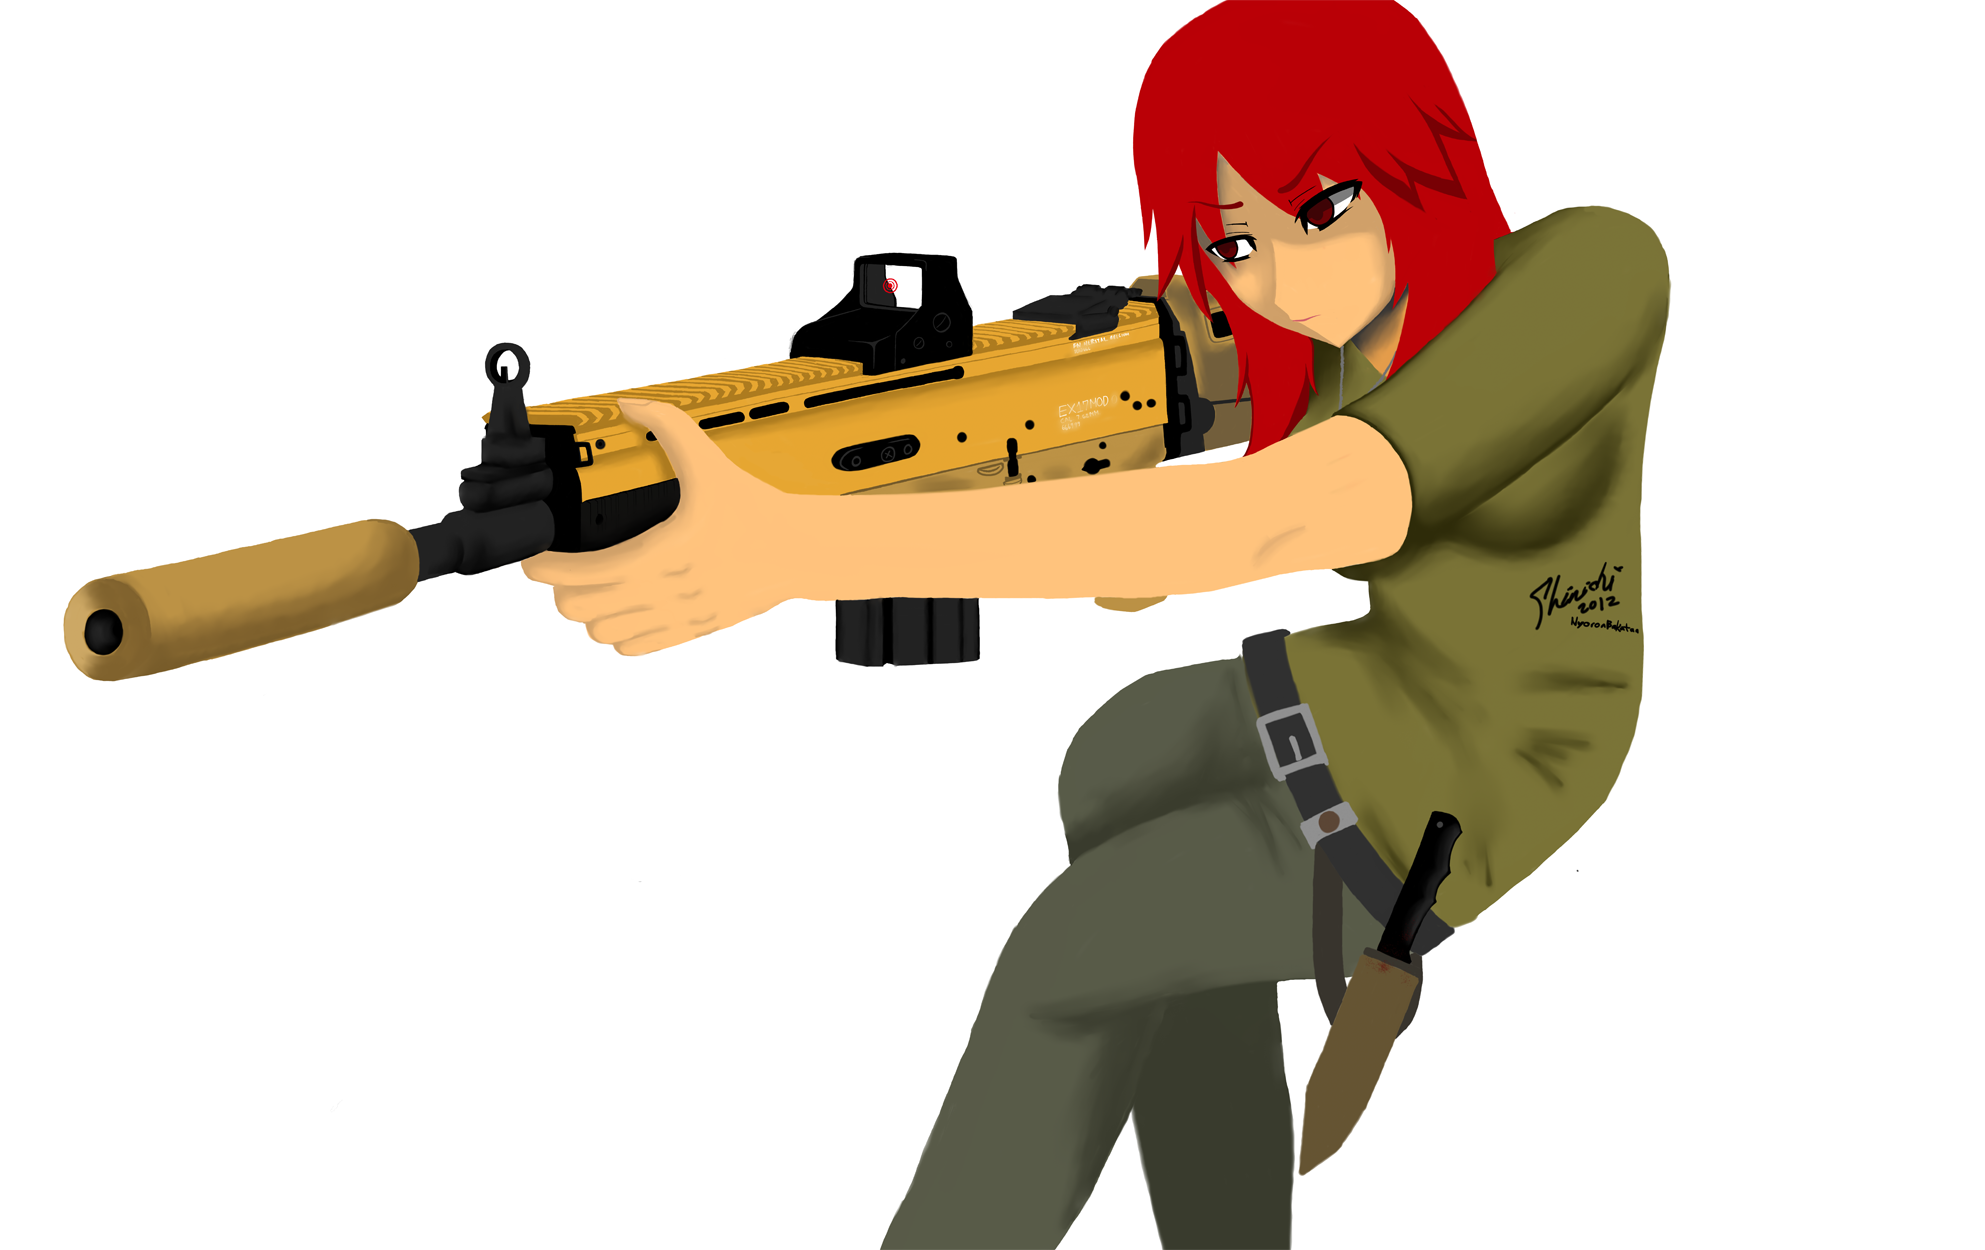 Ruby the Mercenary